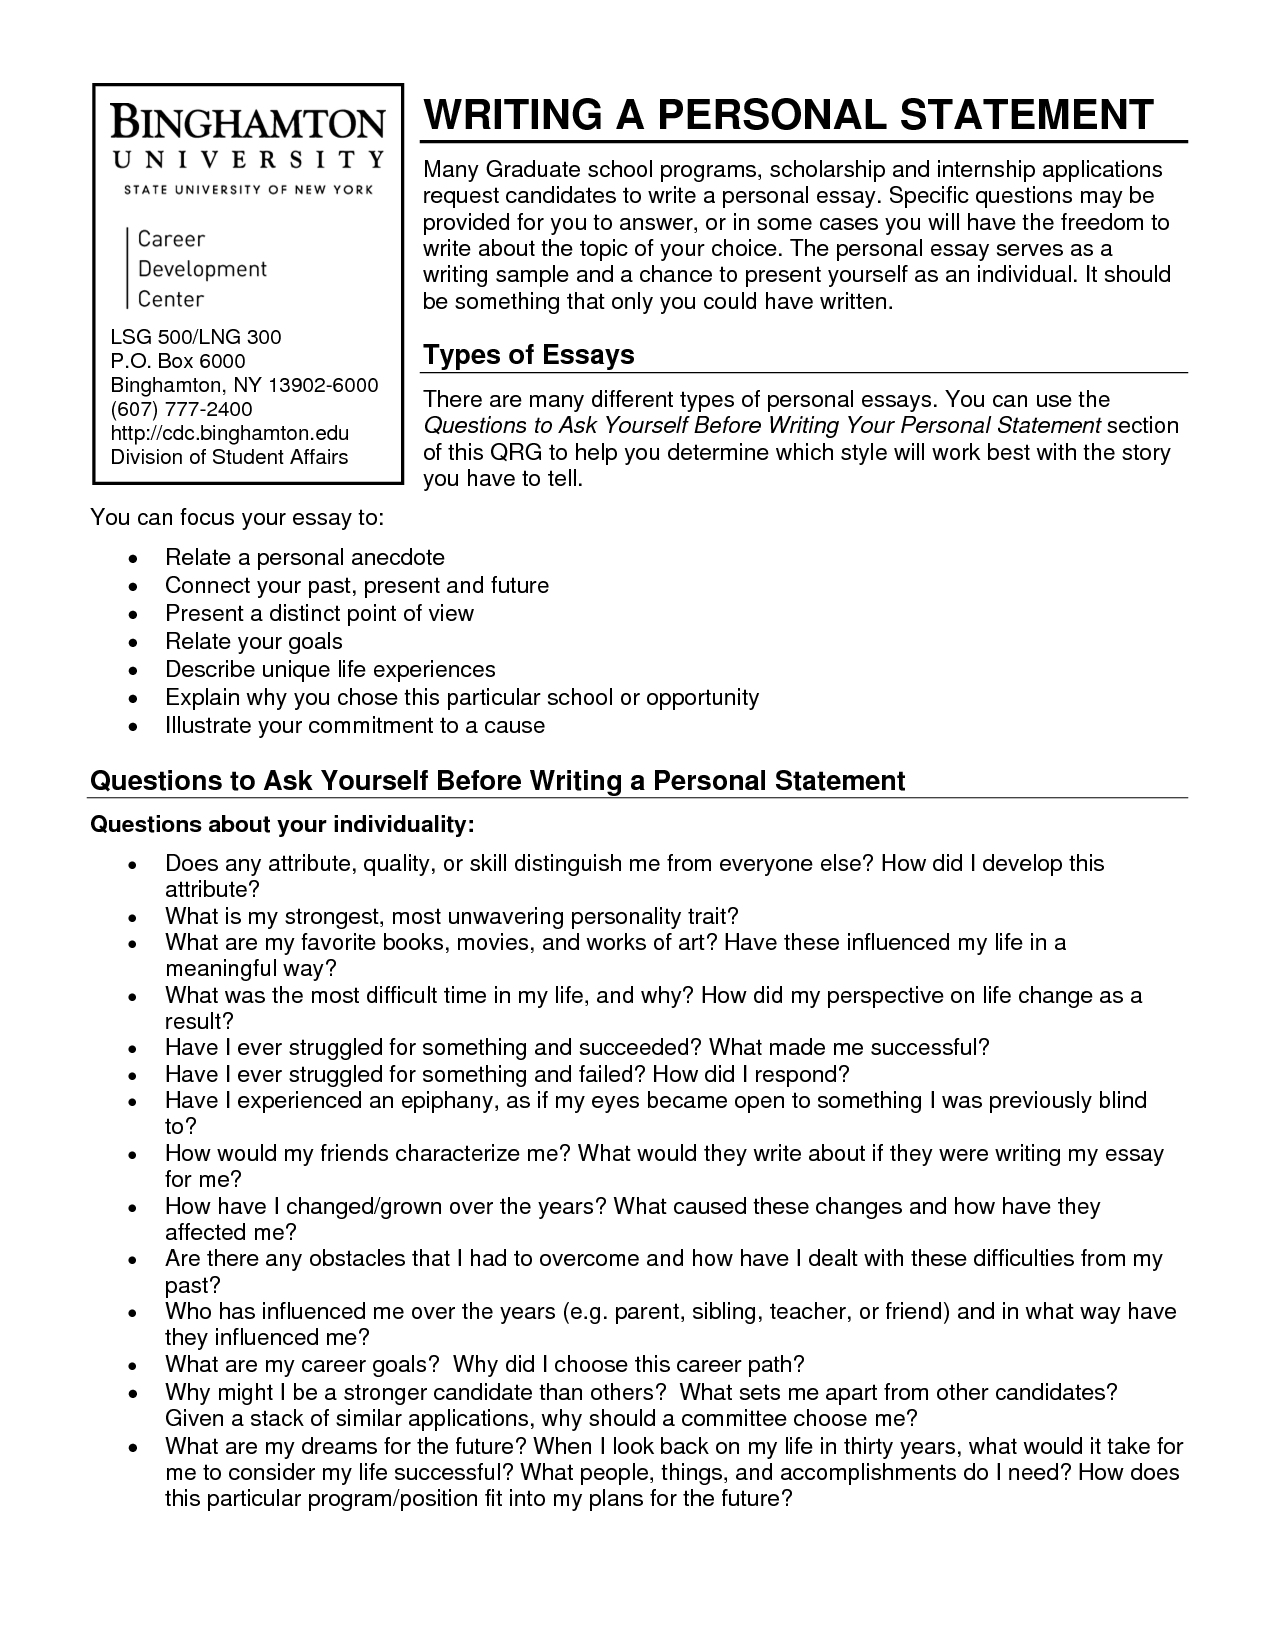 how to make a personal statement how to write my personal statement custom writing